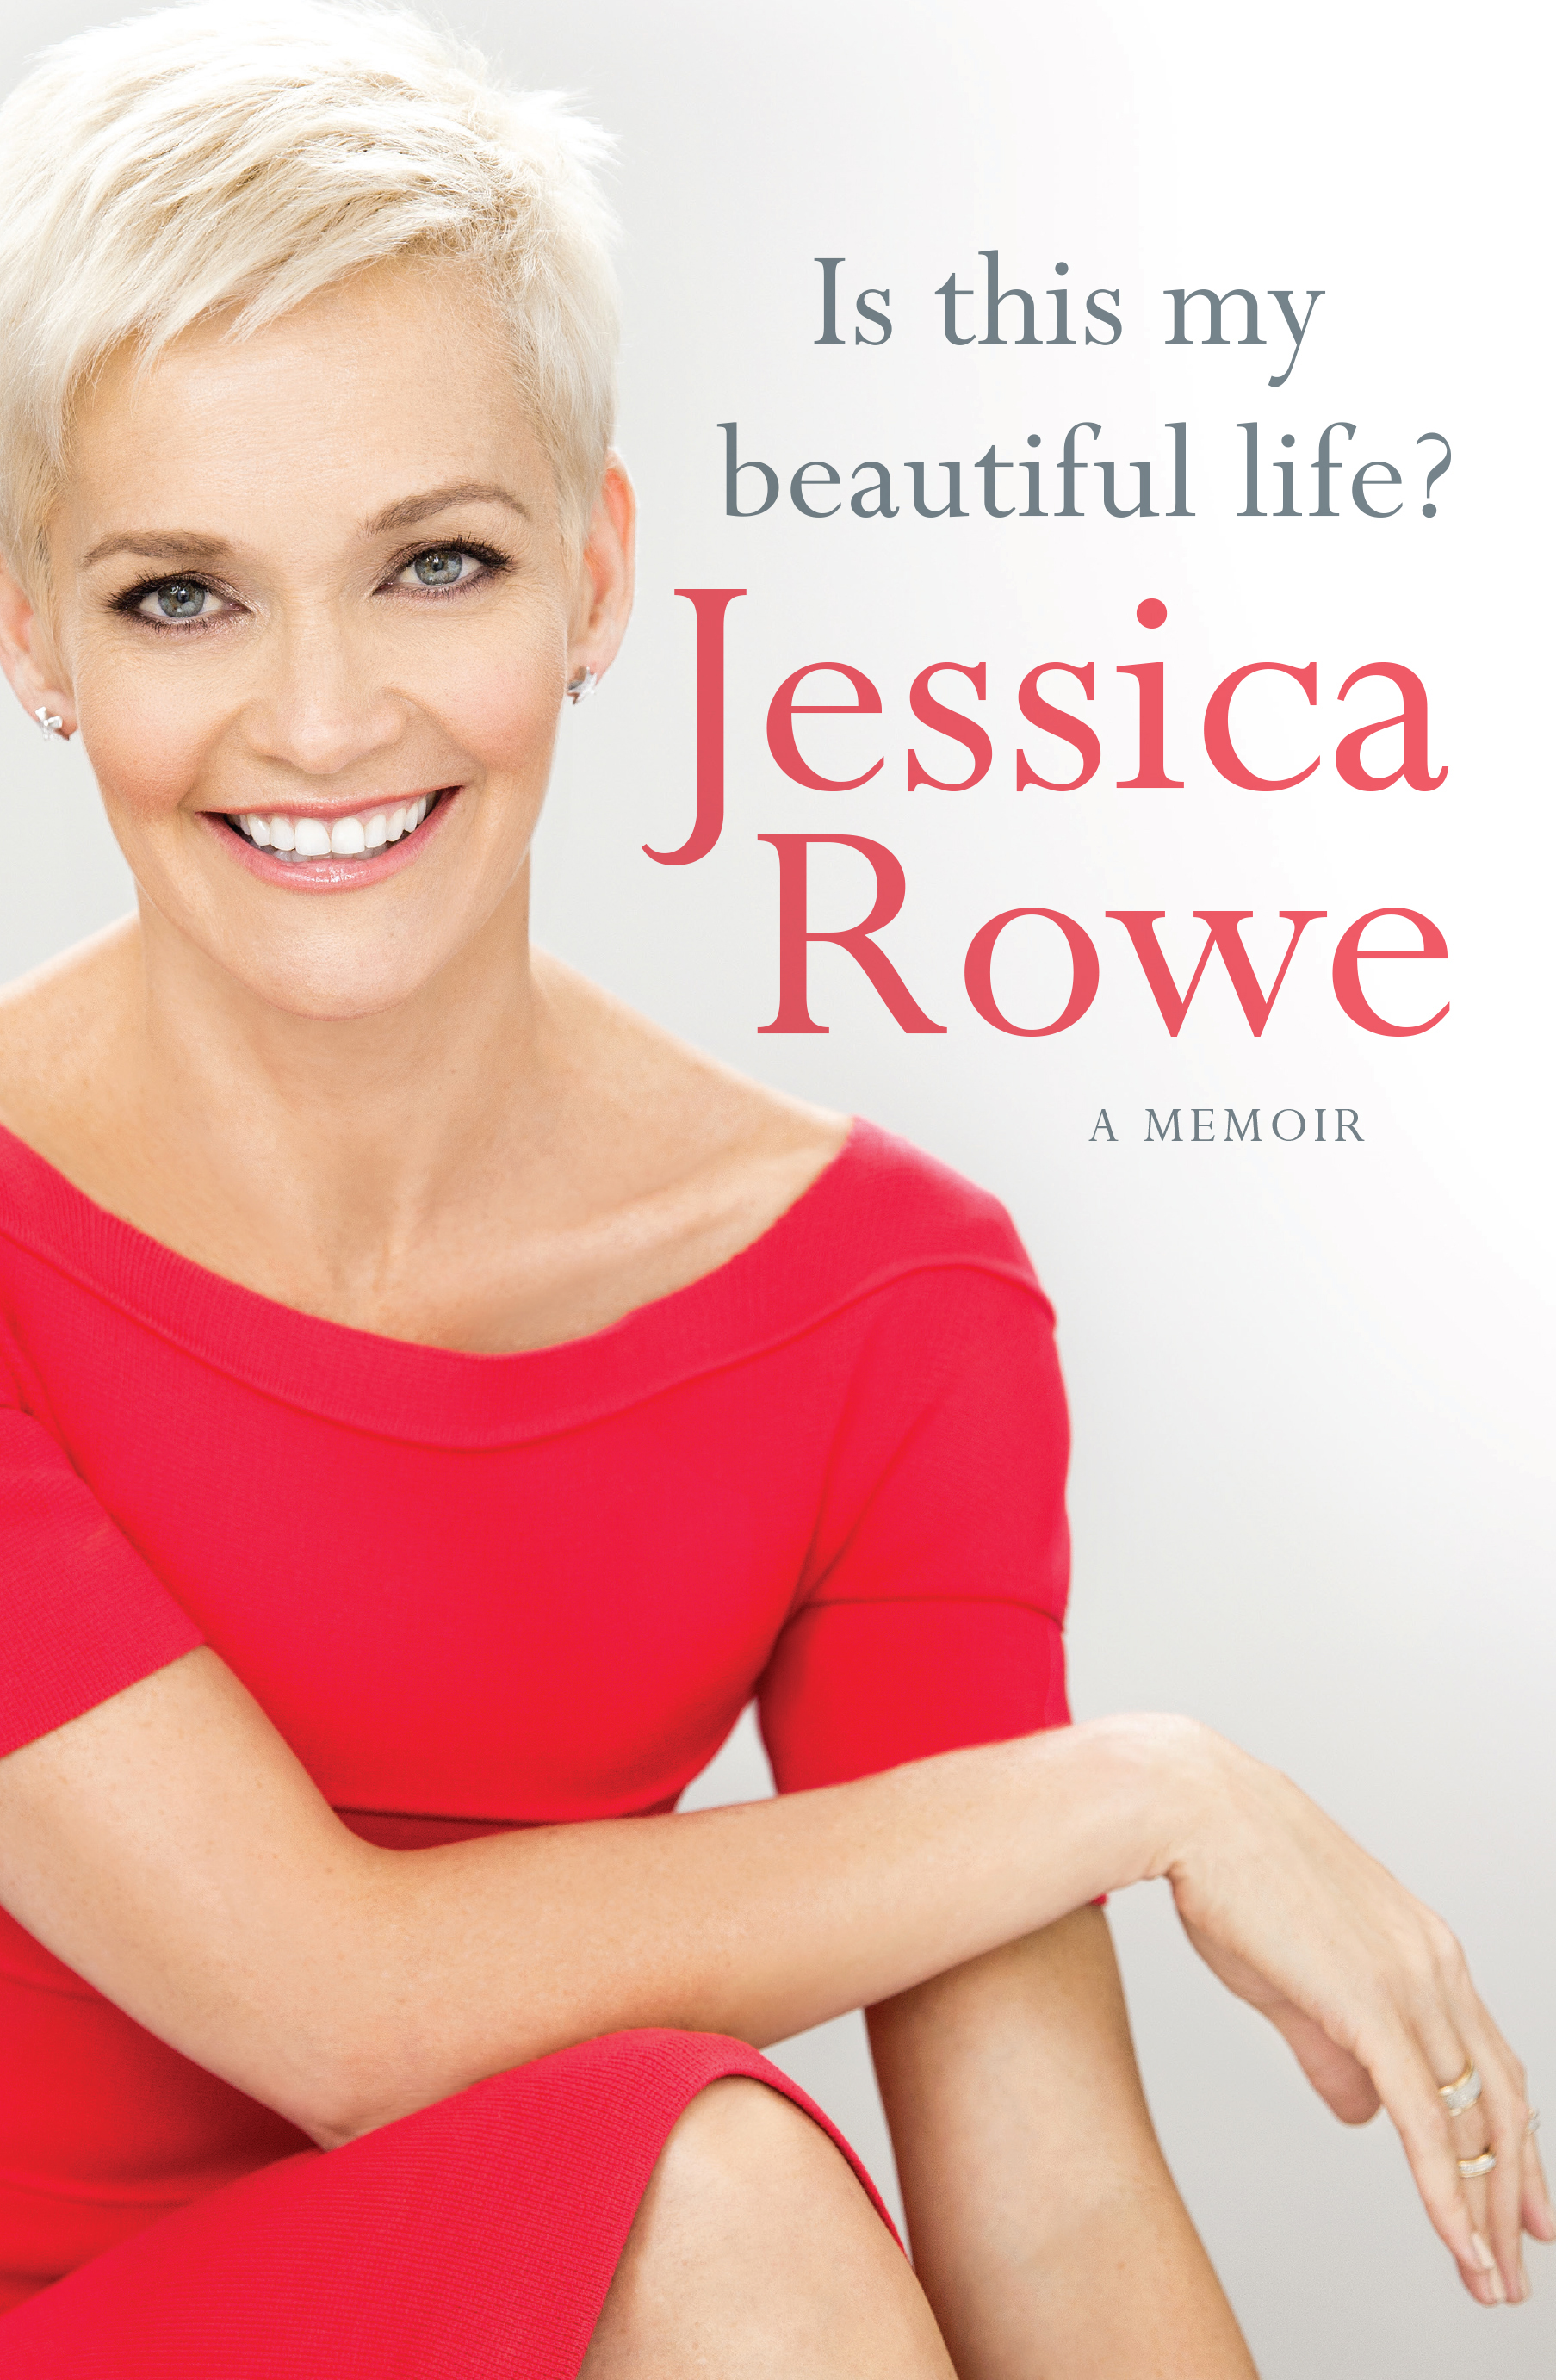 Is This My Beautiful Life? - 2015 Allen & UnwinThe deeply honest, funny, gut-wrenching and touching memoir from journalist, celebrity, wife, mother, television presenter and author, Jessica Rowe. Journalist, celebrity, television presenter, author, ambassador for beyondblue and patron of its work on post-natal depression, Member of the Order of Australia, risk-taker, social commentator, charity worker, public speaker, passionate mother and wife, Jessica Rowe is all of these things, and more. In this extraordinary memoir, Jessica reveals herself as a woman who thought it would be easy to have it all, to do it all. But what was supposed to be her beautiful life derailed in the very public collapse of her television career, her long struggle to conceive, her fears and what she believed to be failings as a mother and in her professional life, and the diagnosis of post-natal depression. Deeply honest, funny, gut-wrenching and touching this book will be treasured by women who don't feel they fit the mould of the perfect woman; women who understand that in life, 'having it all' may develop a different meaning; and women suffering from post-natal depression, who will be encouraged that it's okay to ask for help.